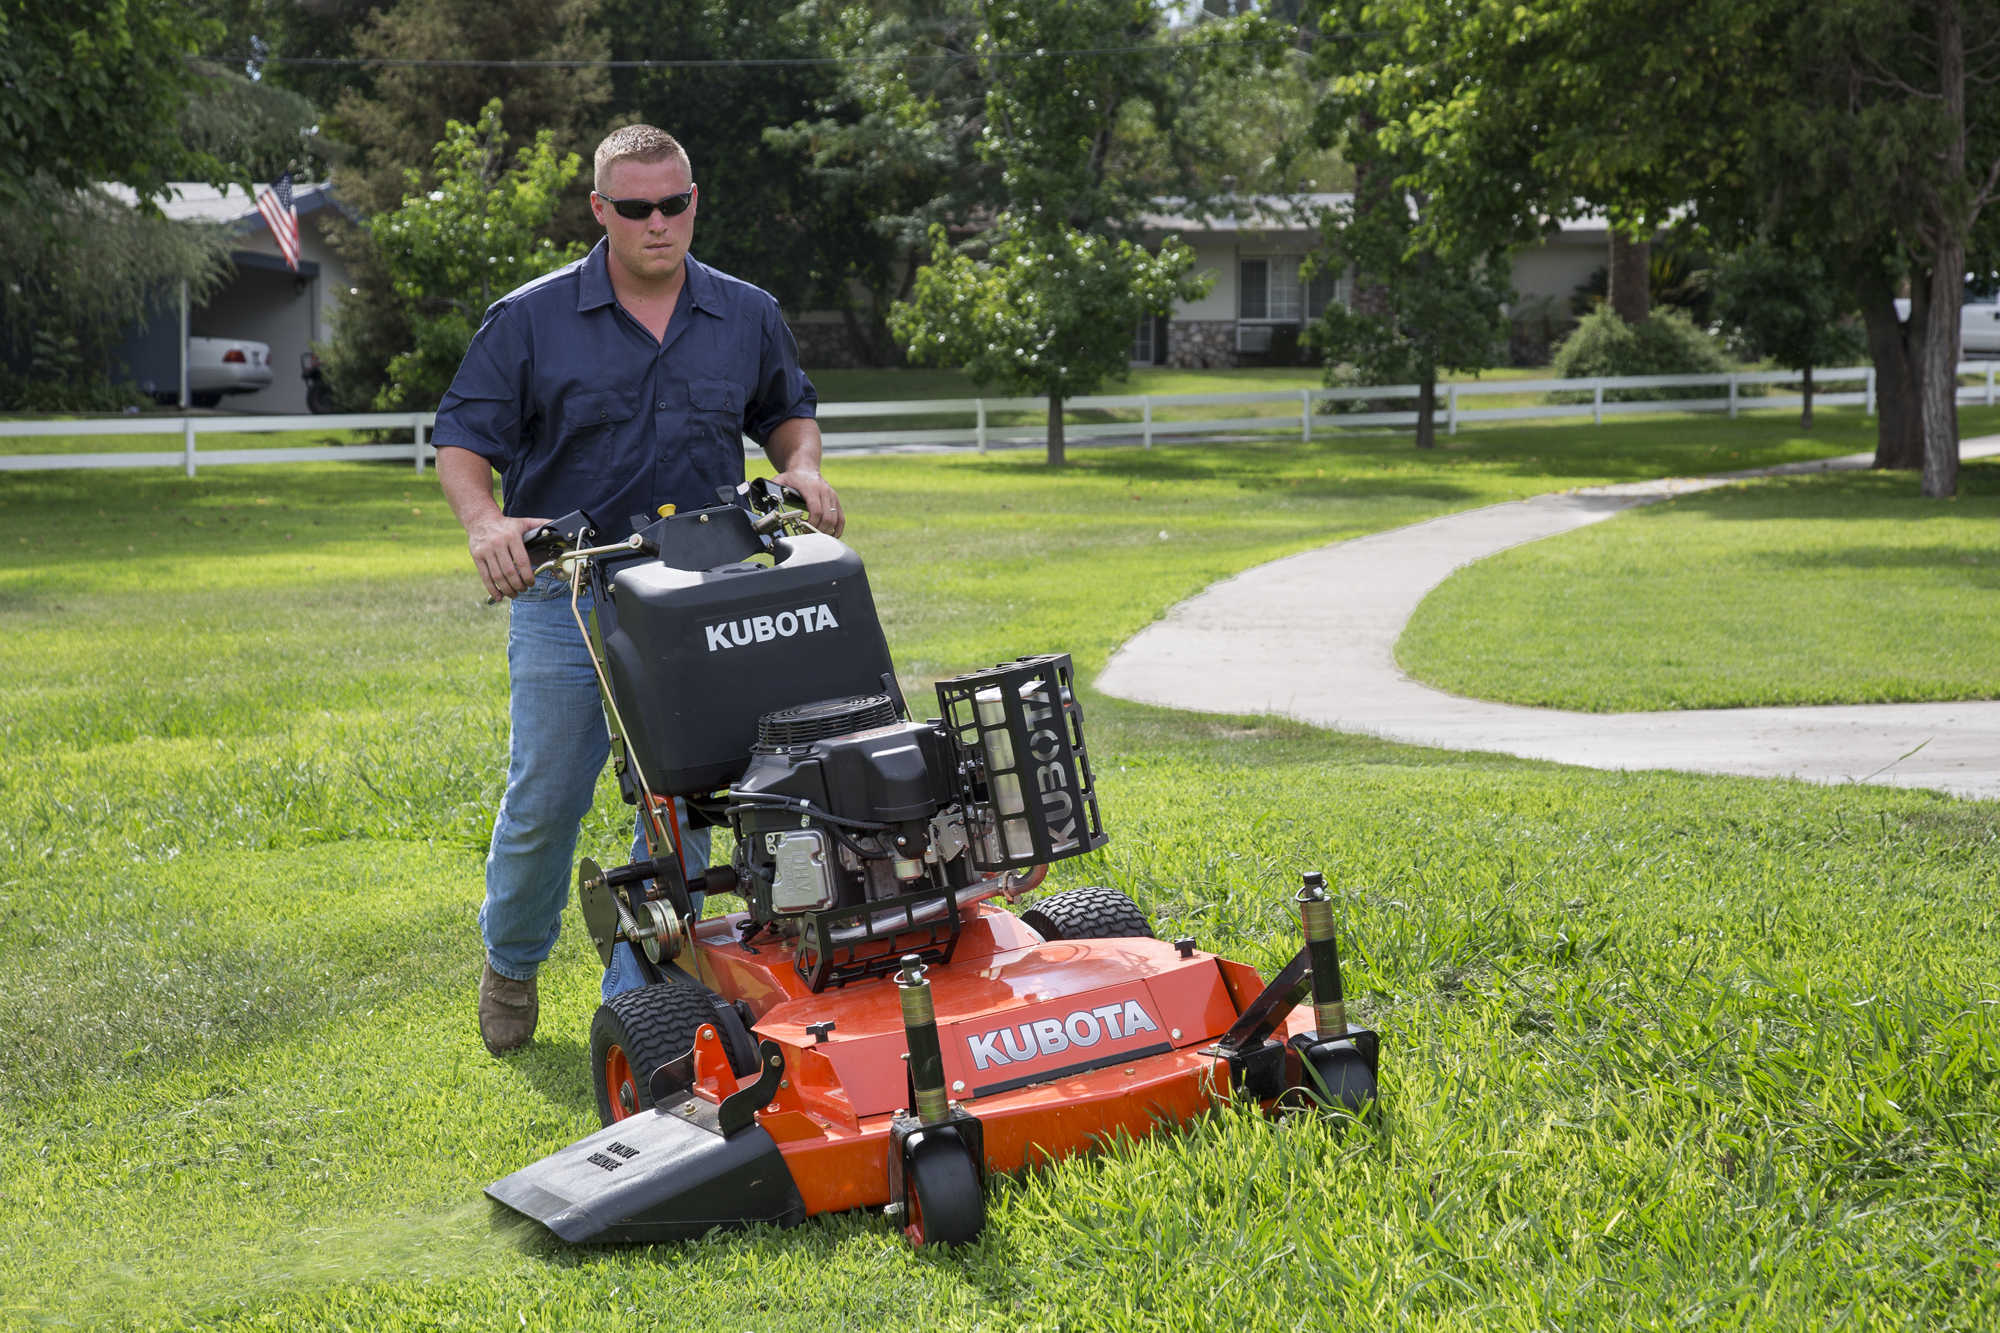 Kubota Introduces Commercial Walk-Behind Mowers and All-New ZD Mowers, and  Positions its Dealers as Full-Service Turf Equipment Providers | Business  Wire